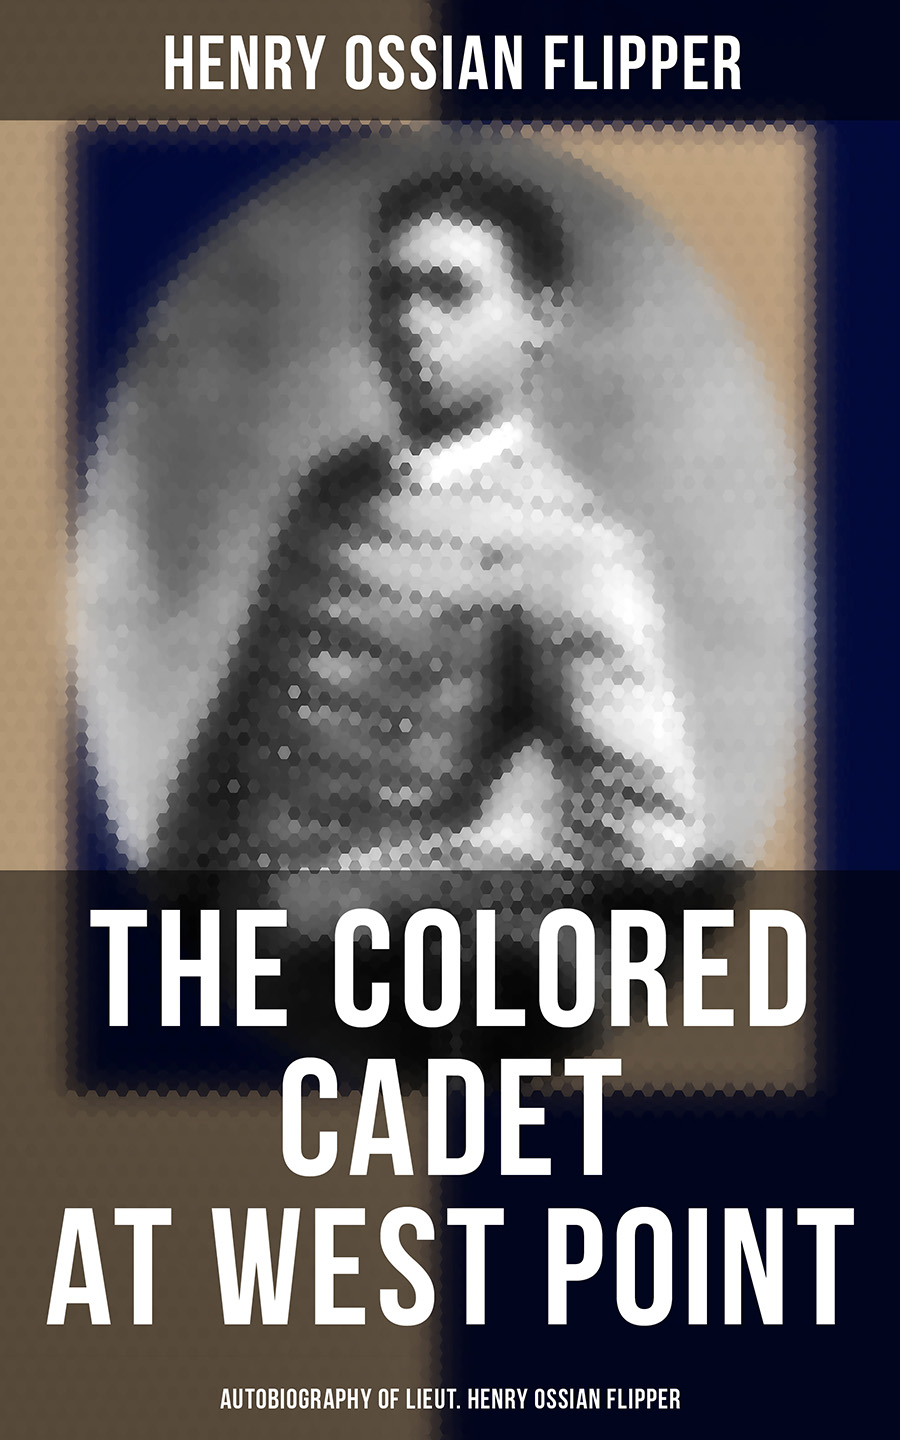 Henry Ossian Flipper The Colored Cadet at West Point - Autobiography of Lieut. Henry Ossian Flipper o henry heart of the west